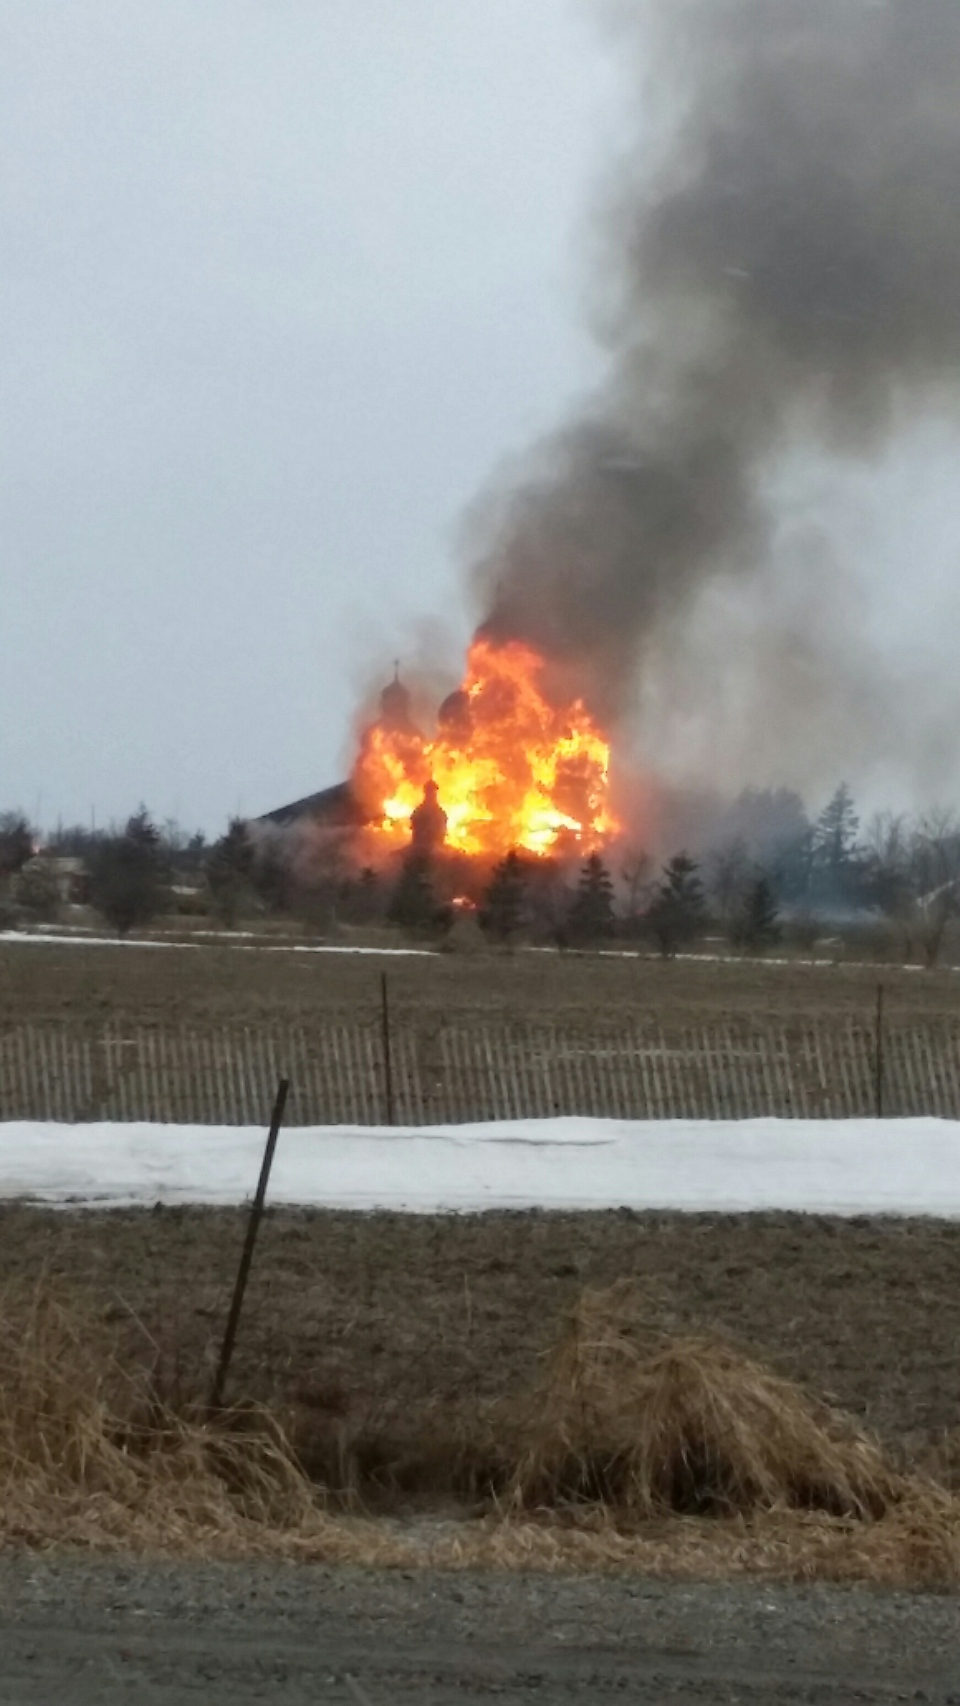 Smoke is seen billowing from a church in Brampton early Saturday morning. Crews are currently battling a two-alarm blaze at the building.(Submitted)